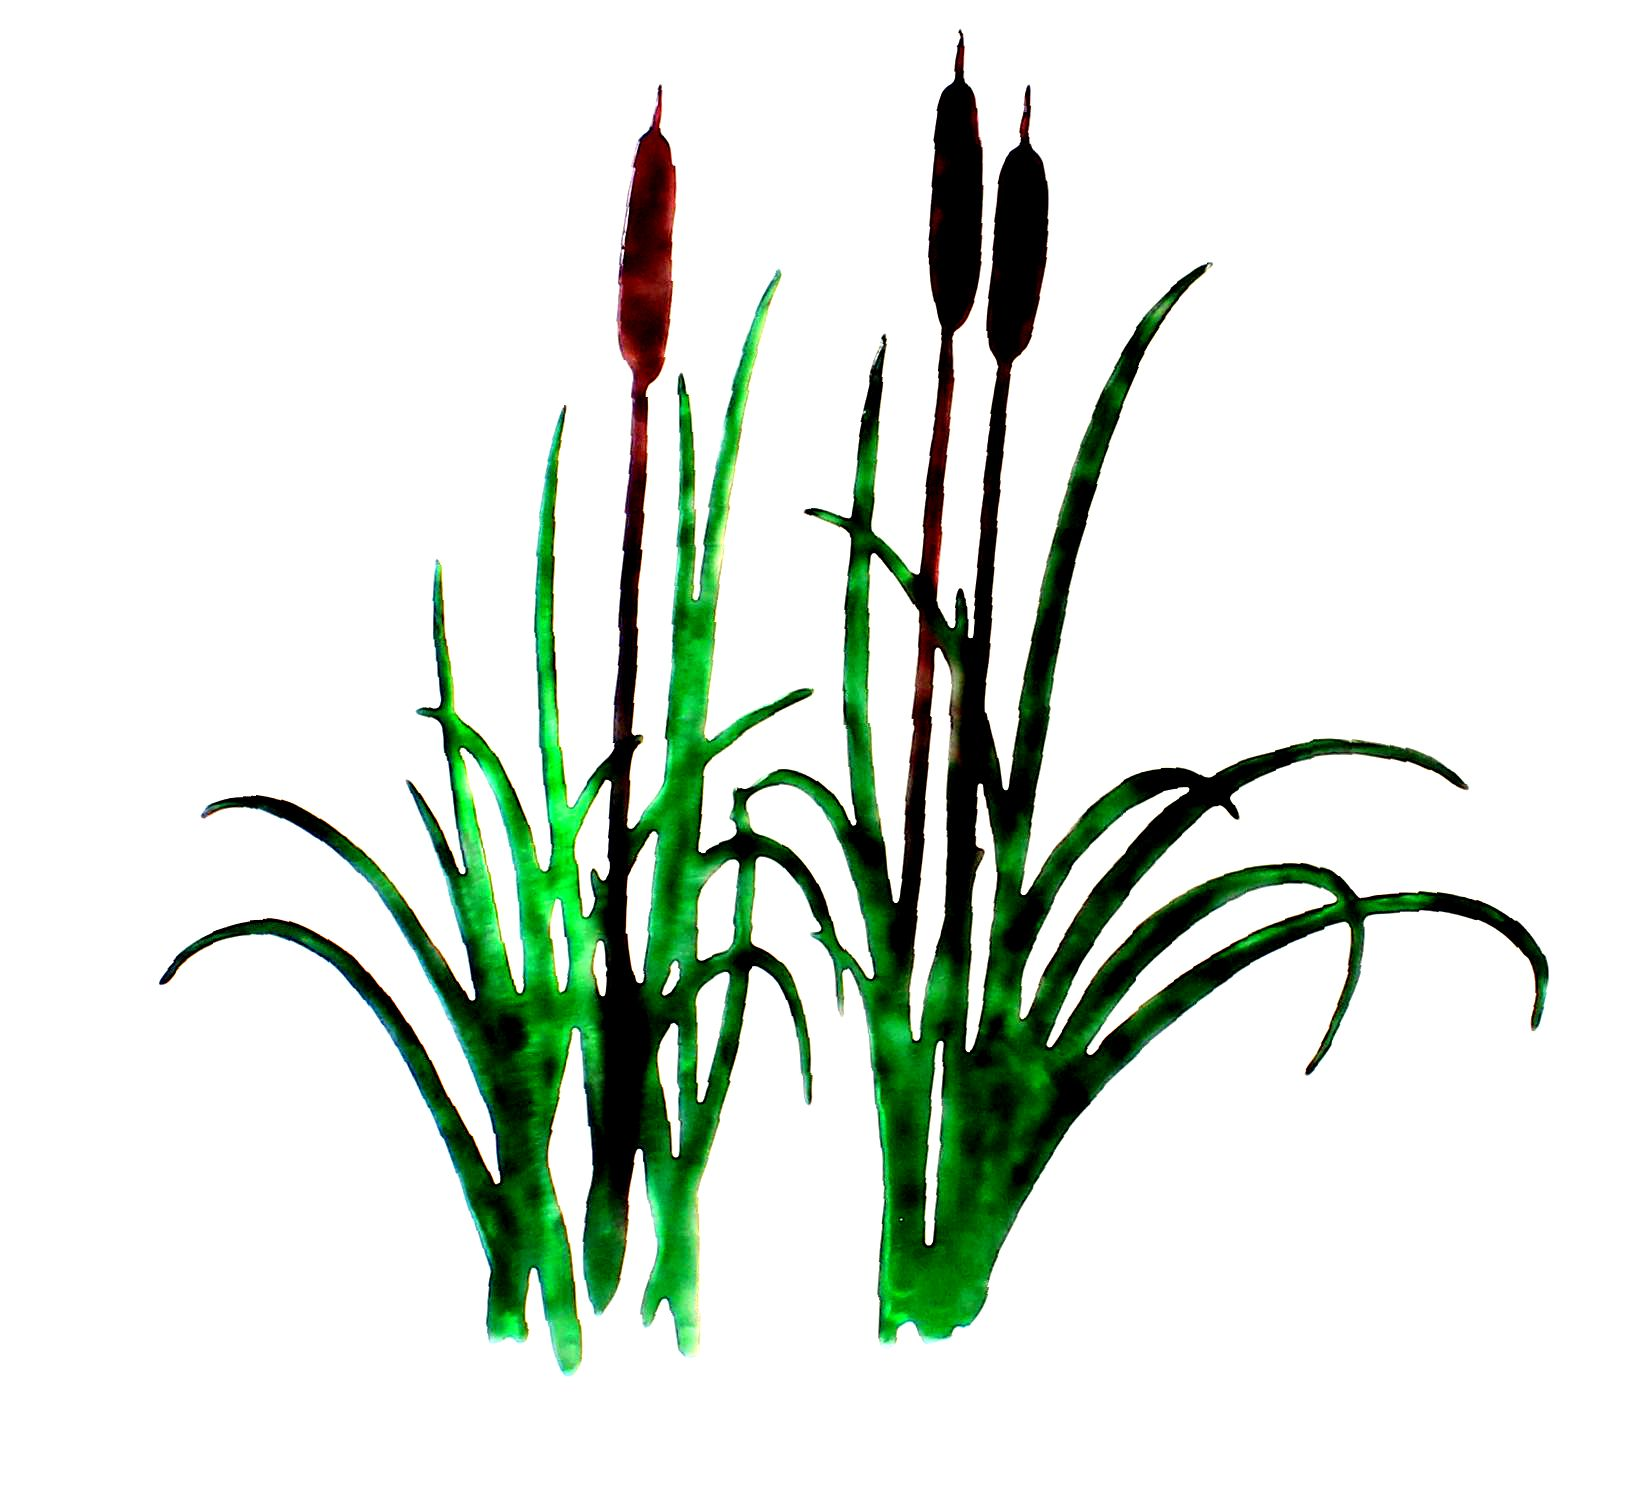 Cattails silhouette clipart black and white download Free Cattail Cliparts, Download Free Clip Art, Free Clip Art on ... black and white download